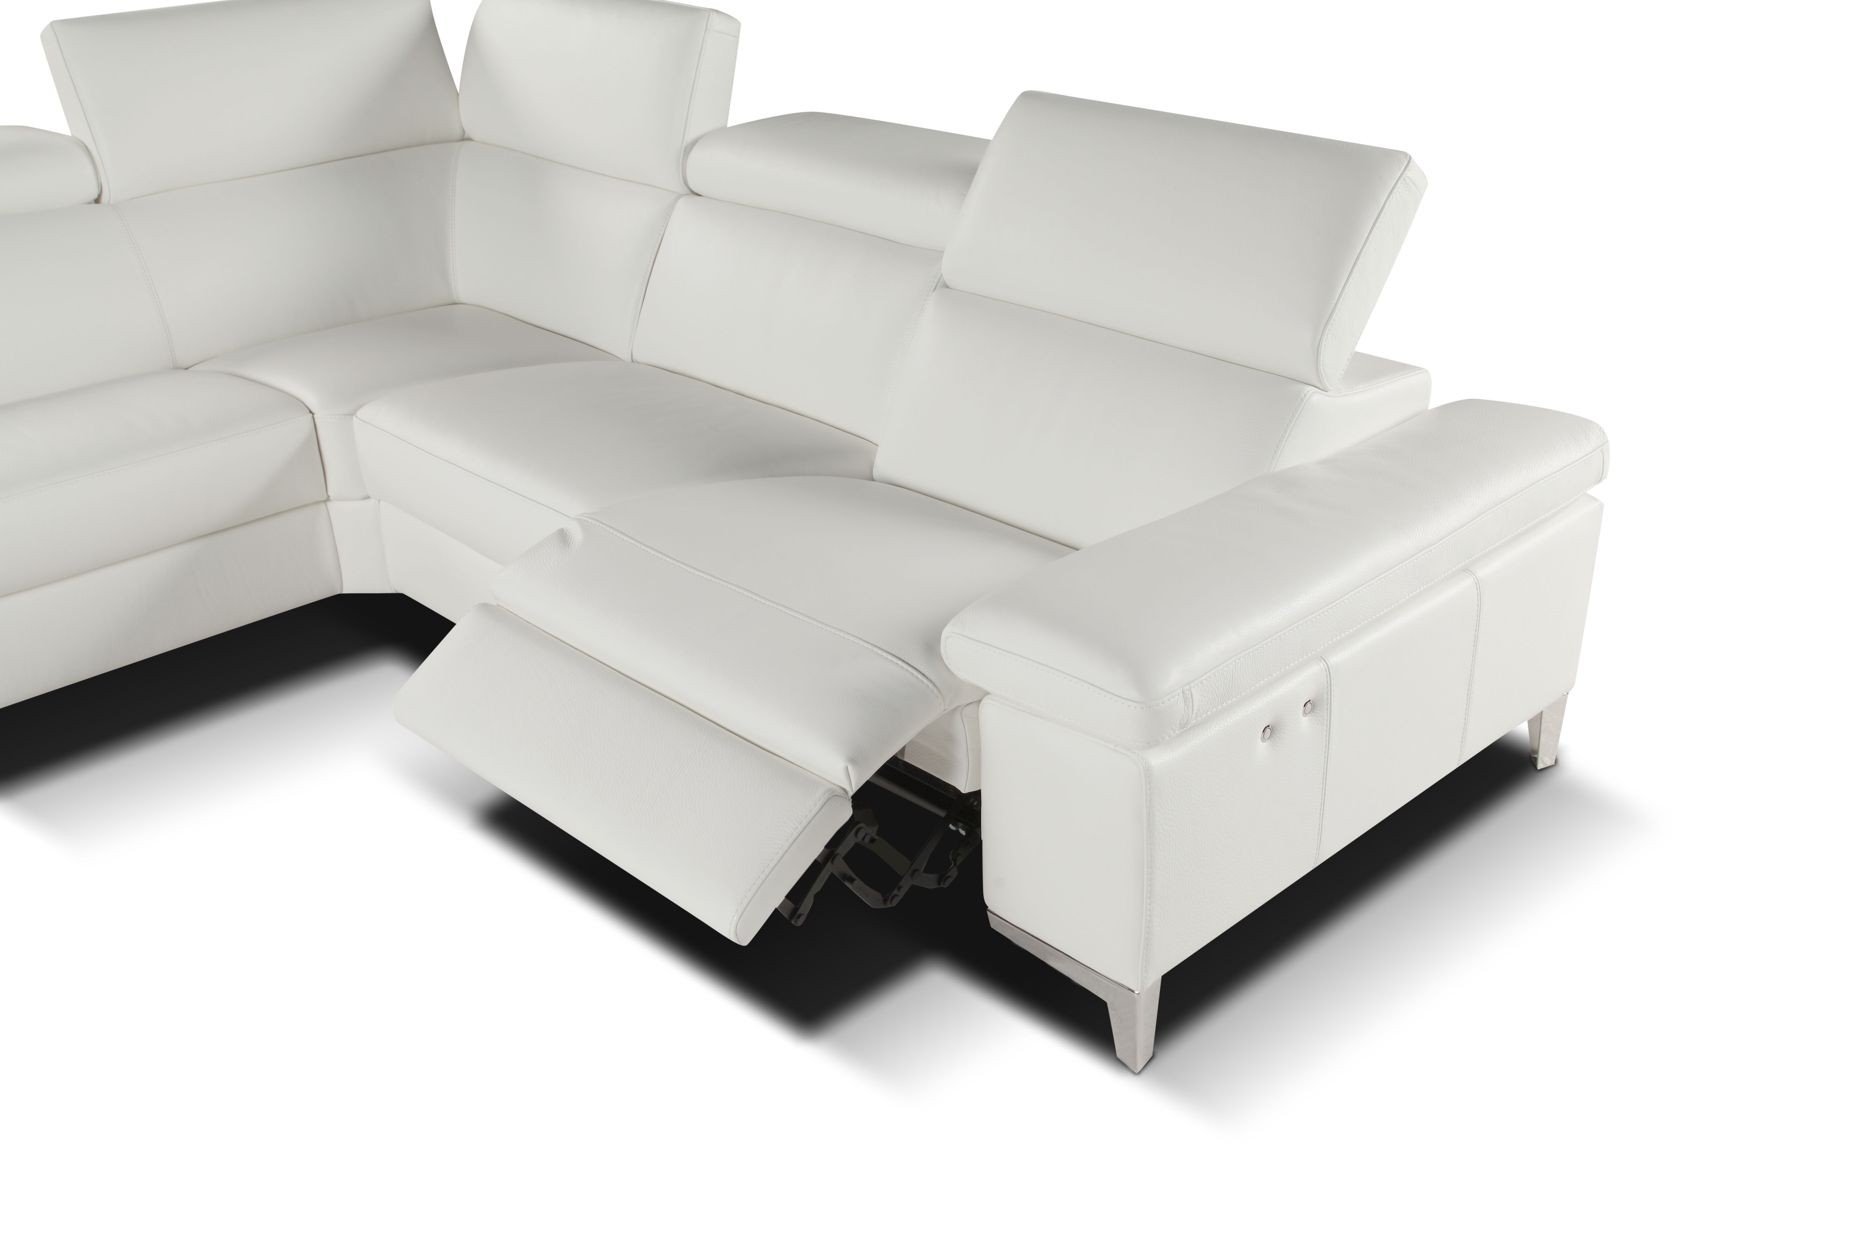 Giuseppe&giuseppe Pertaining To Modern Reclining Leather Sofas (View 4 of 20)